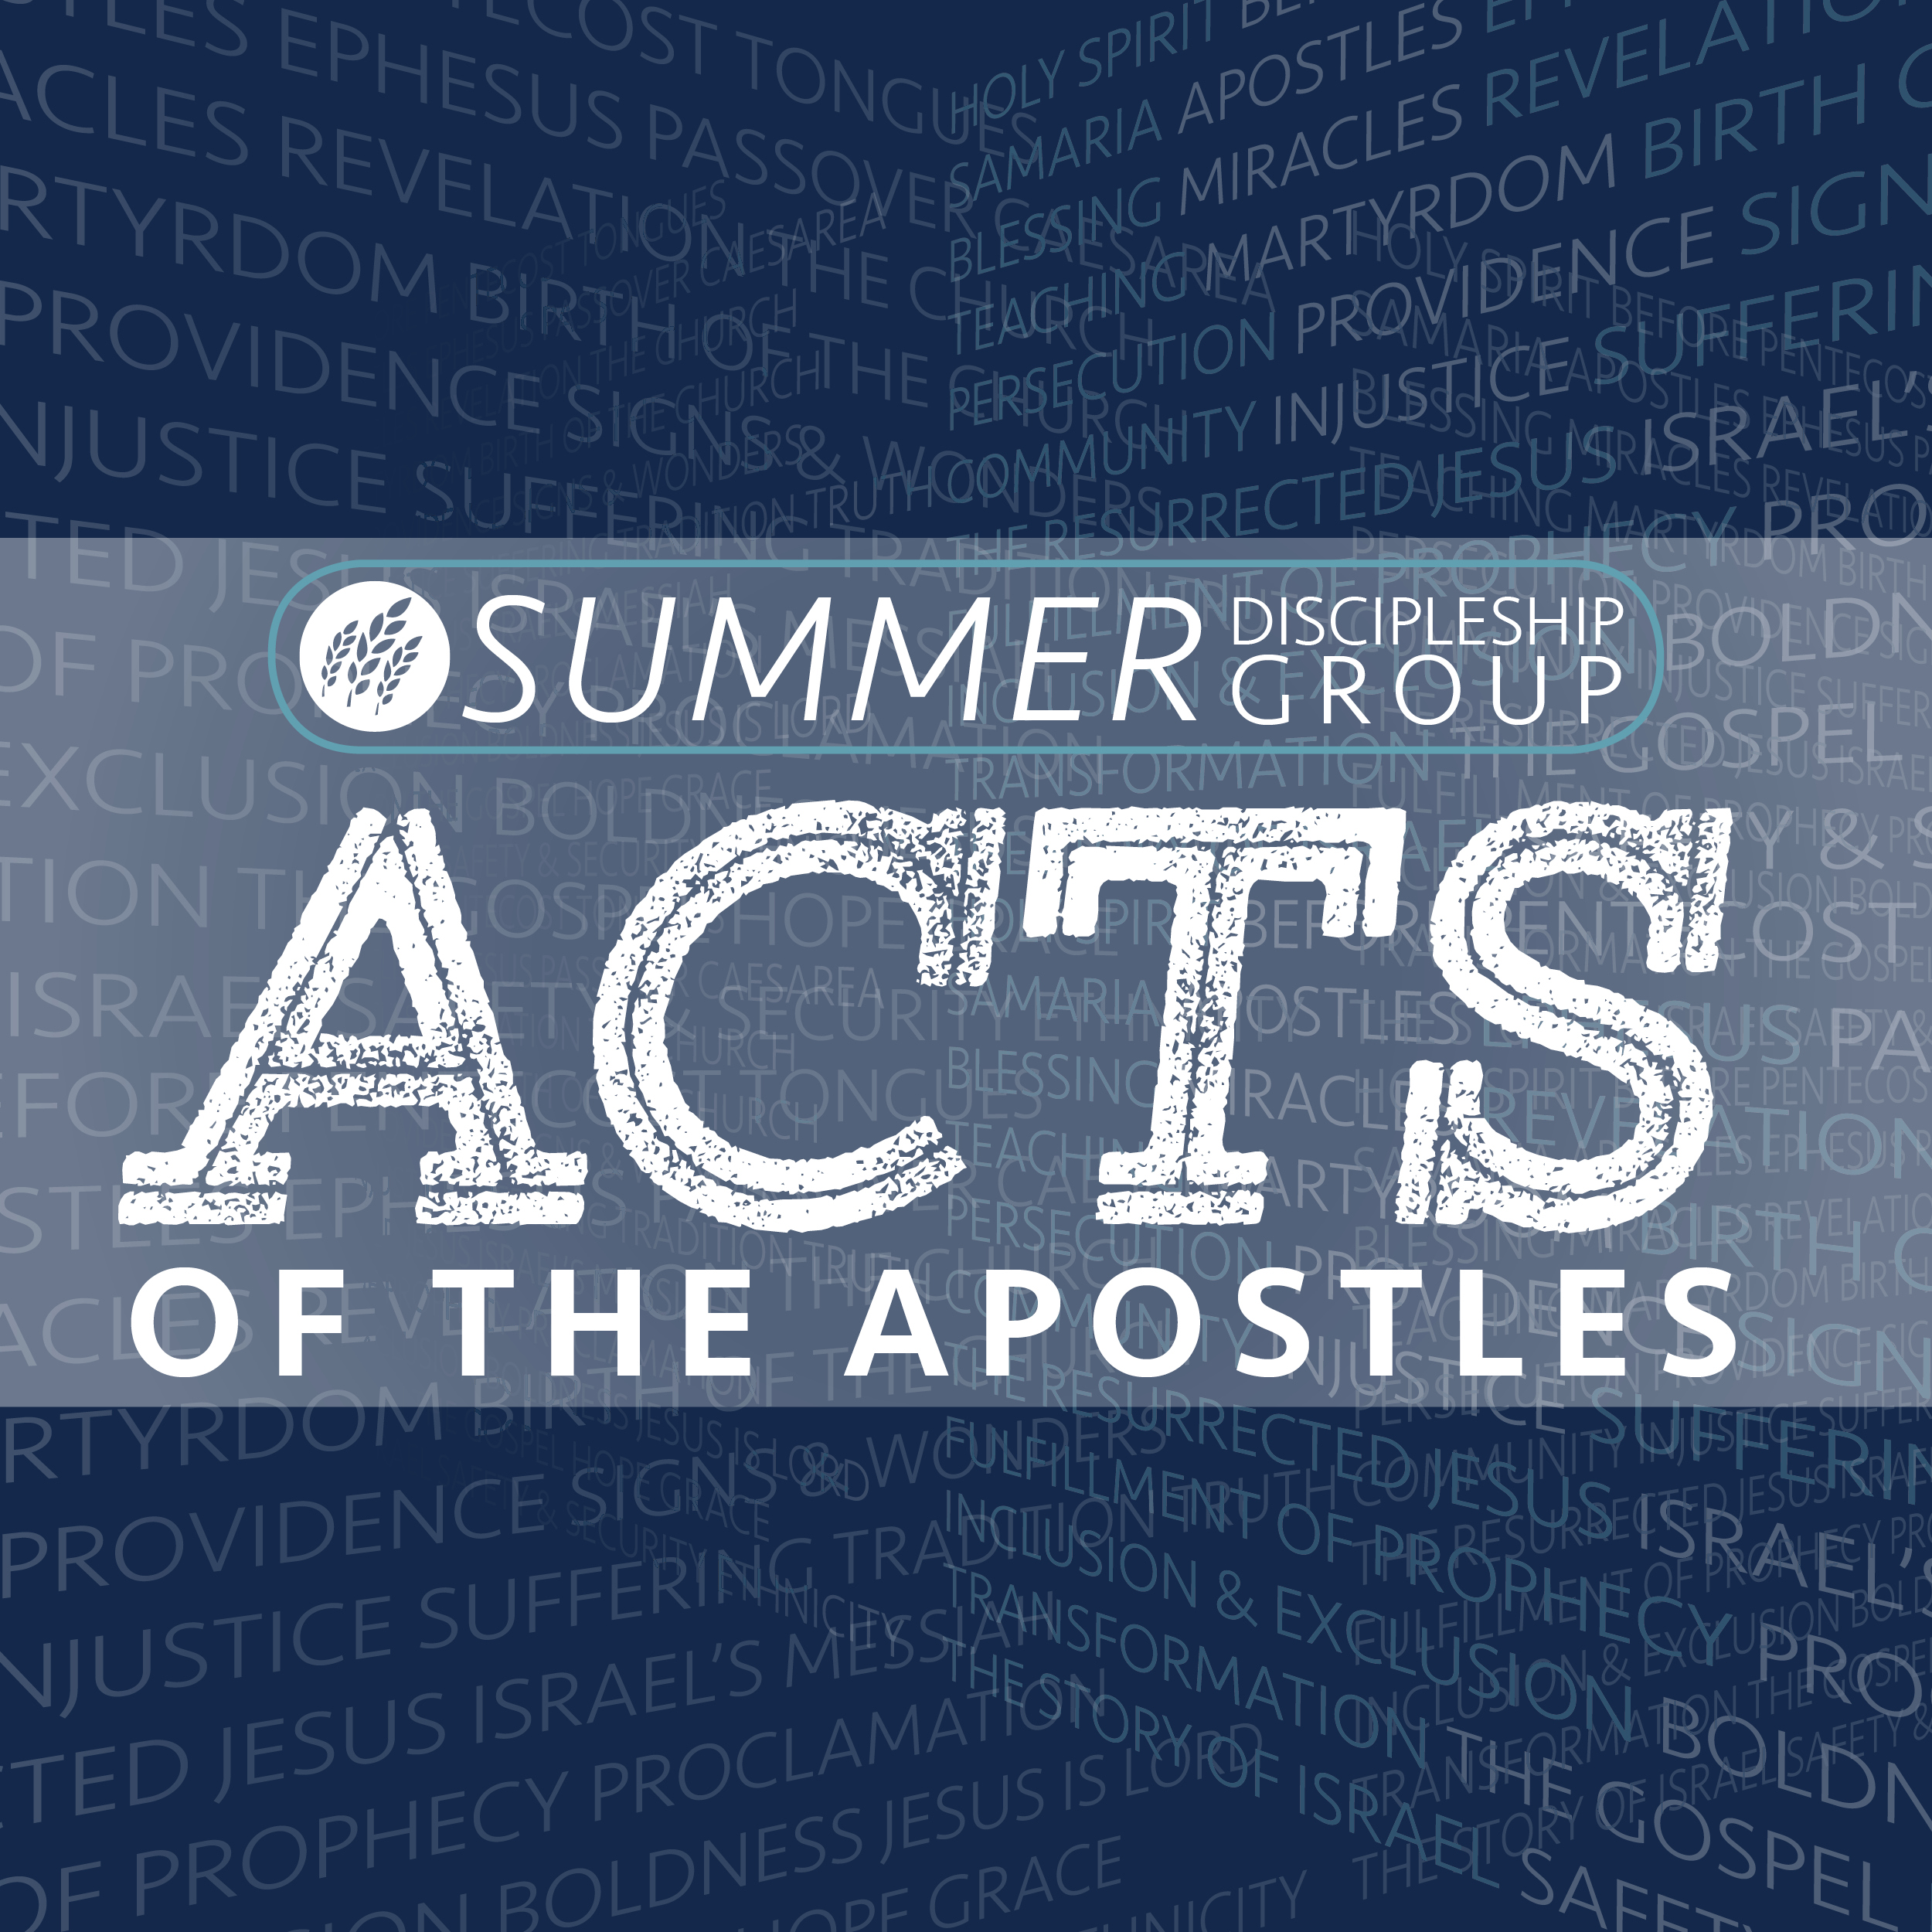 Acts of the apostles summer discipleship group 1200 x 1200